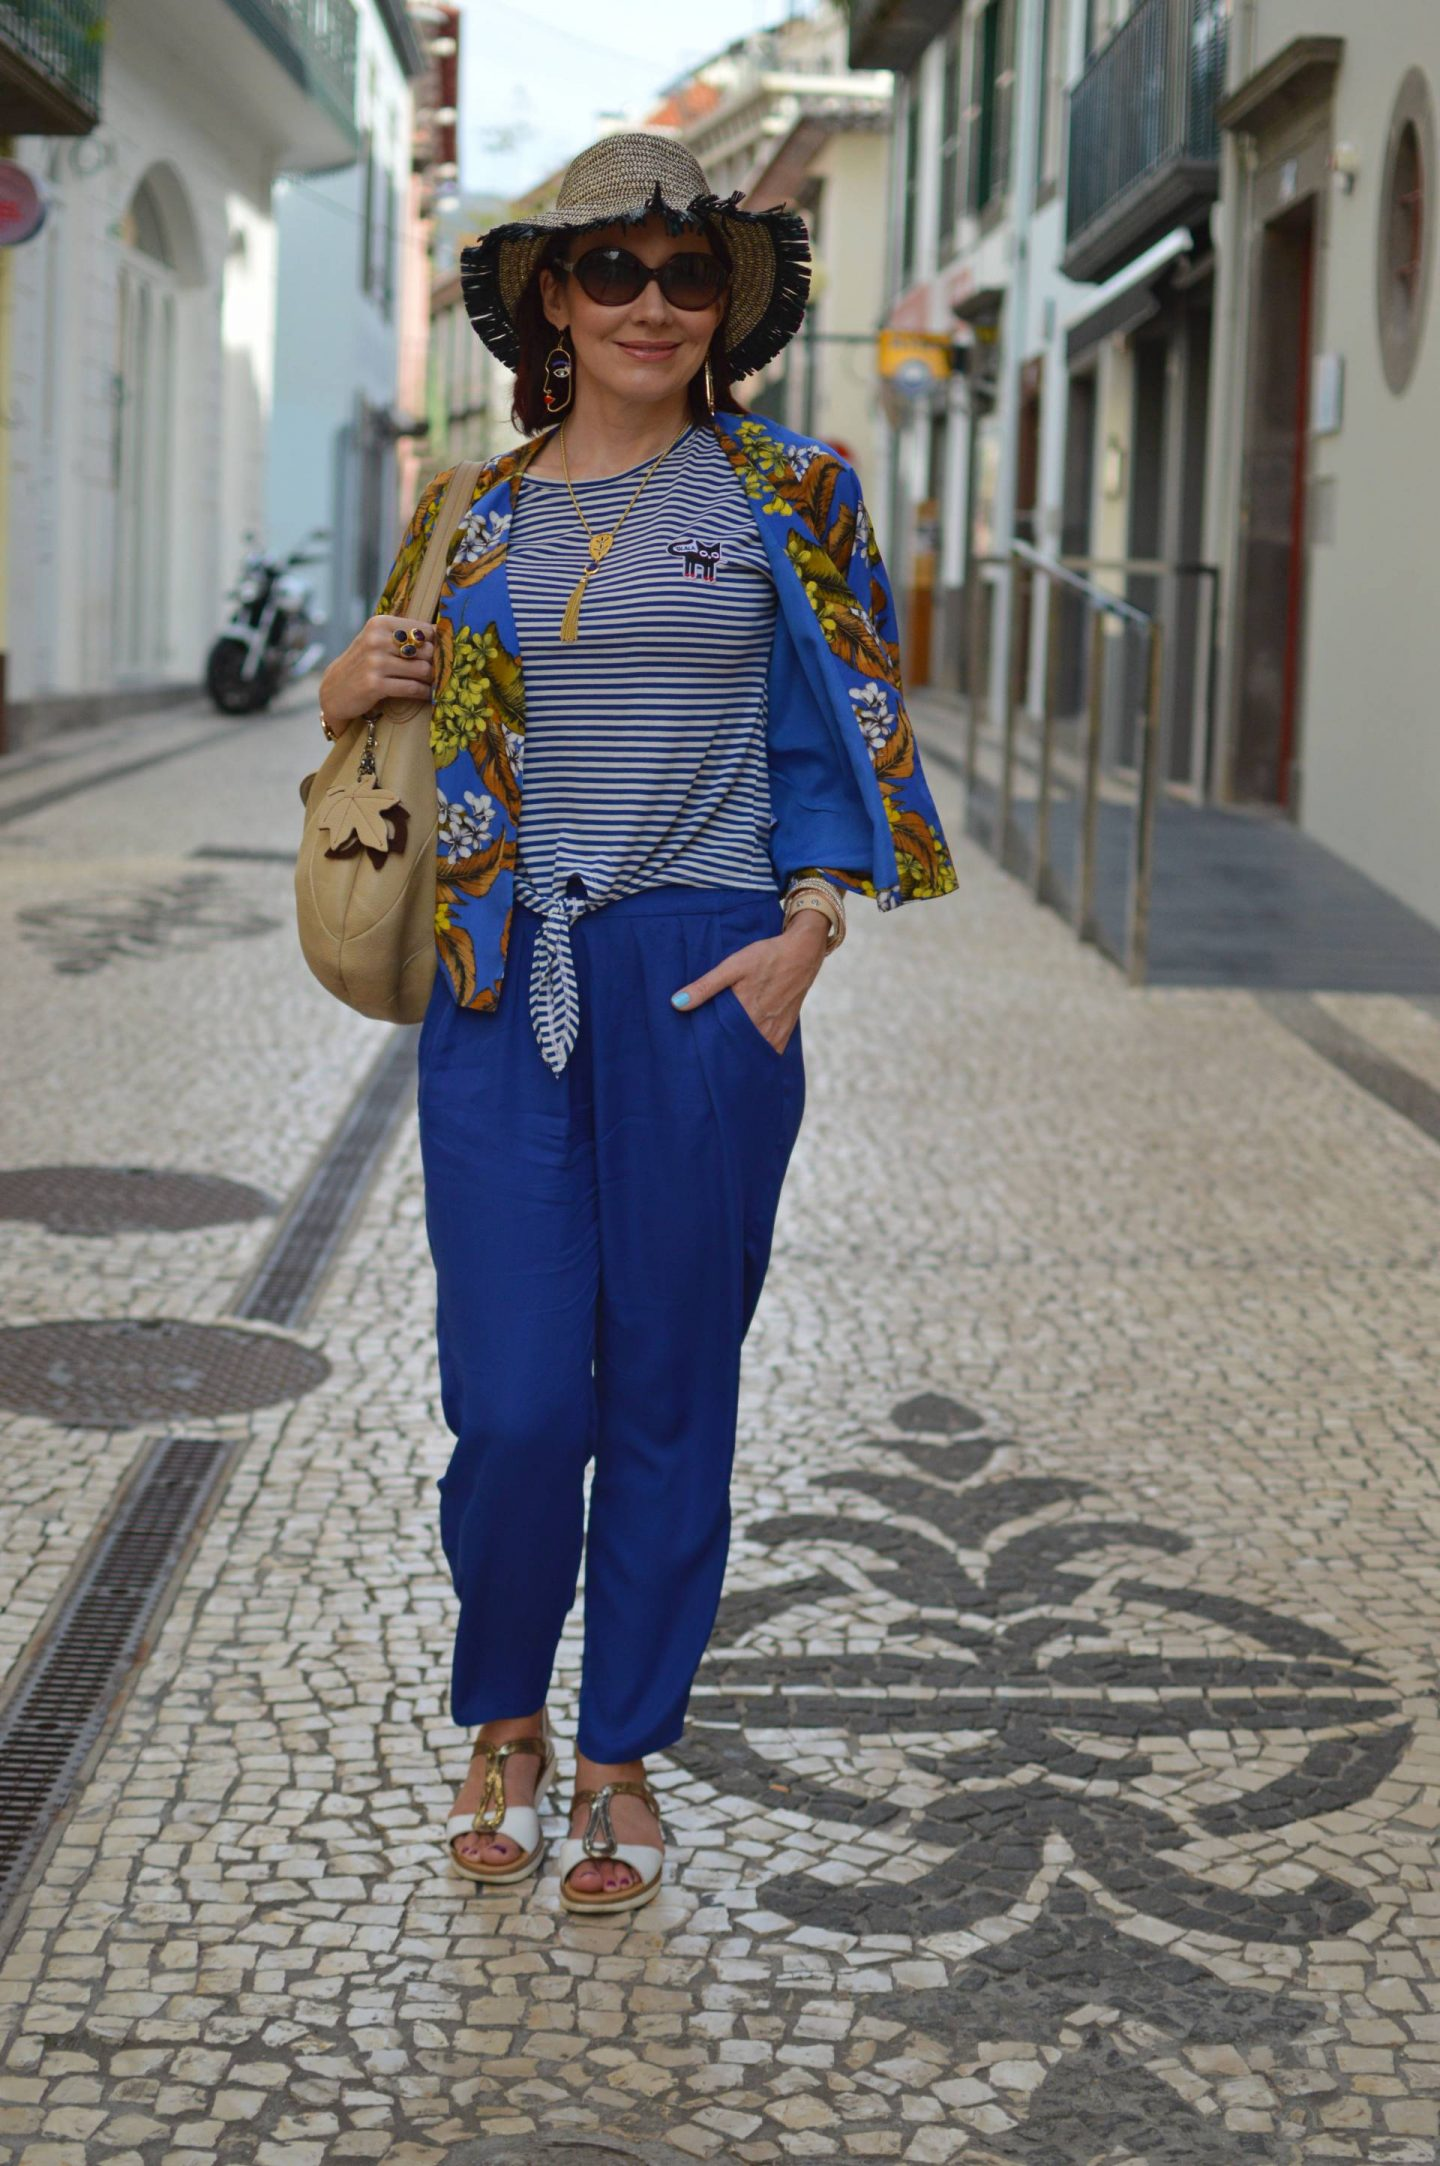 Stripes and Floral Print - Exploring Madeira